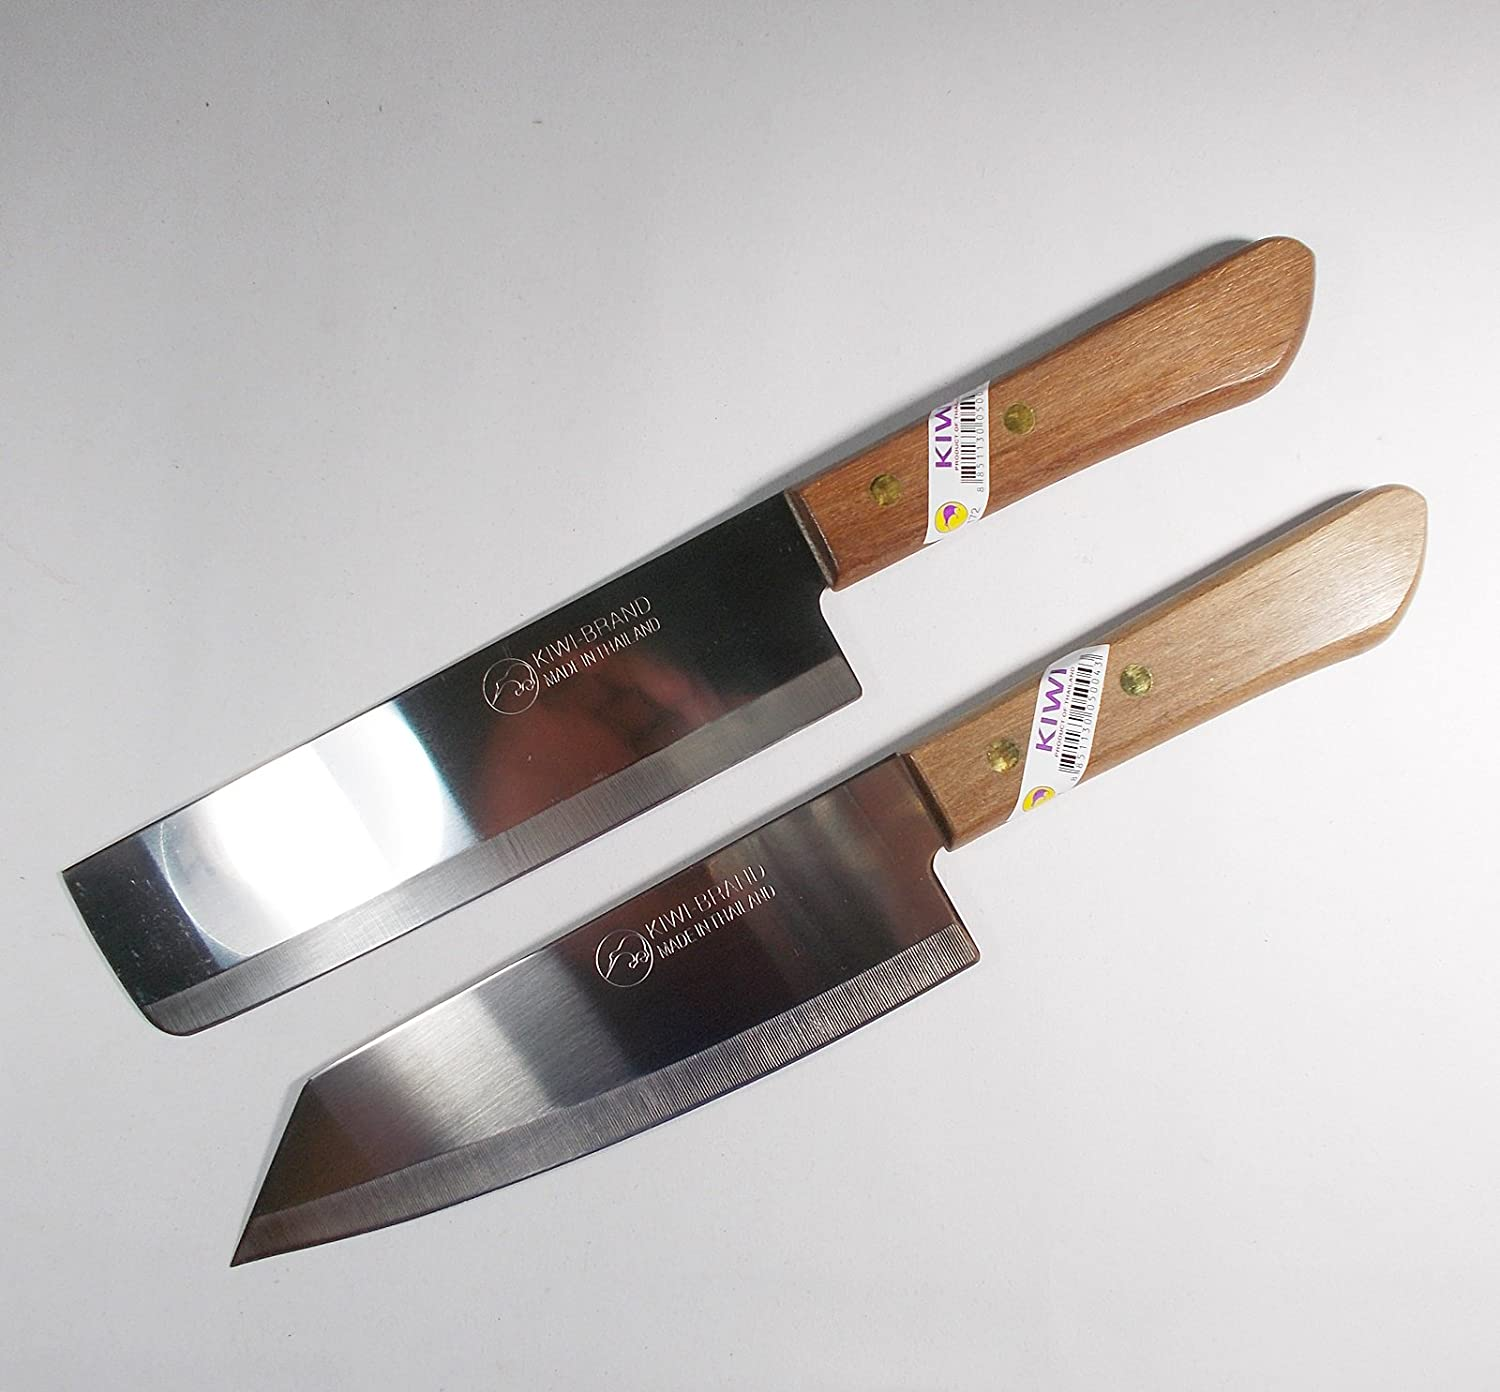 chef 39 s knife cook utility knives set 2 kiwi brand 171 172 cutlery steak wood ebay. Black Bedroom Furniture Sets. Home Design Ideas